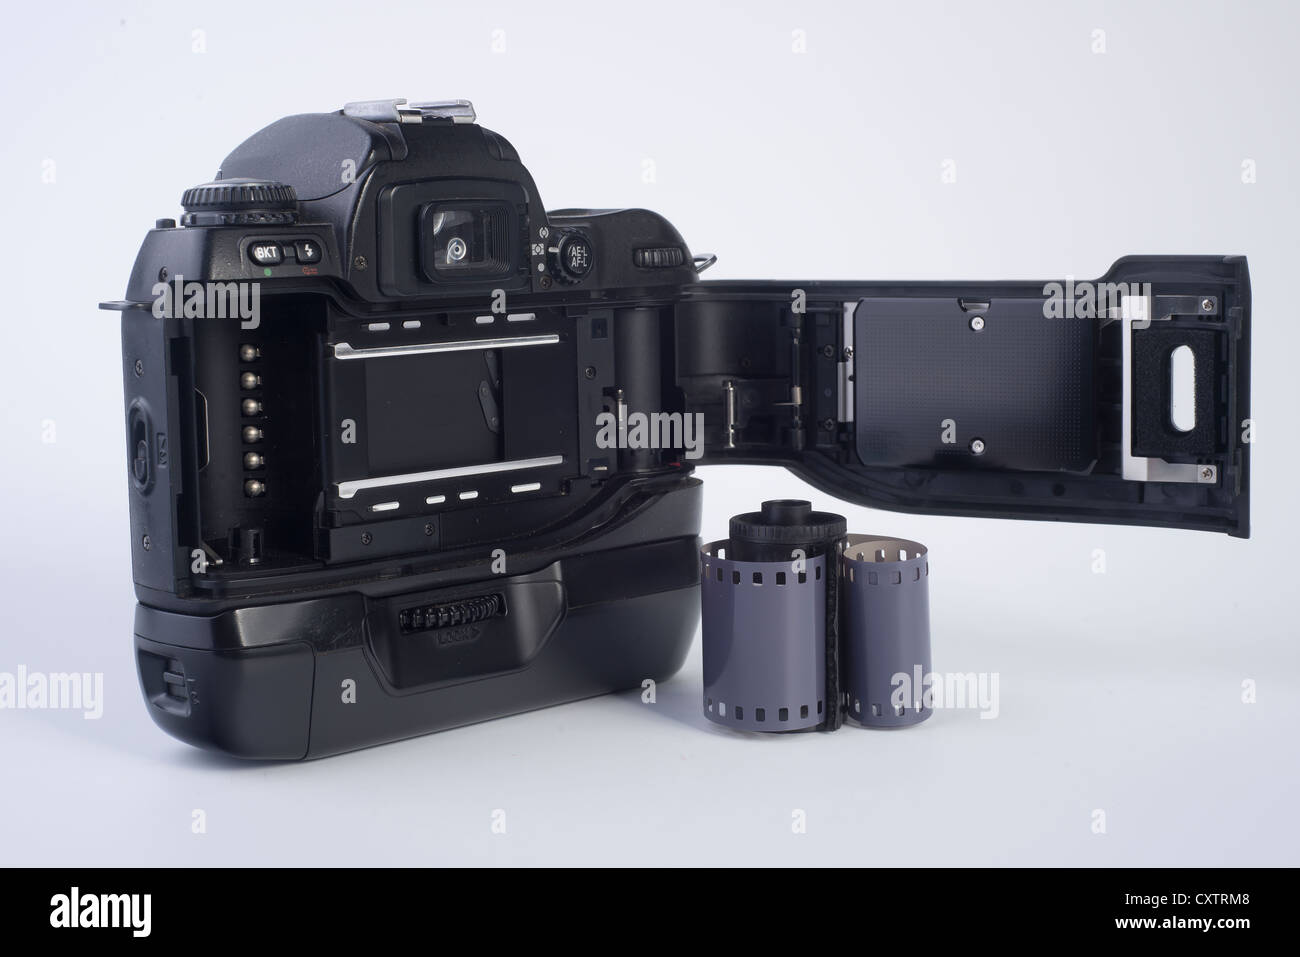 an old analogic camera with film - Stock Image